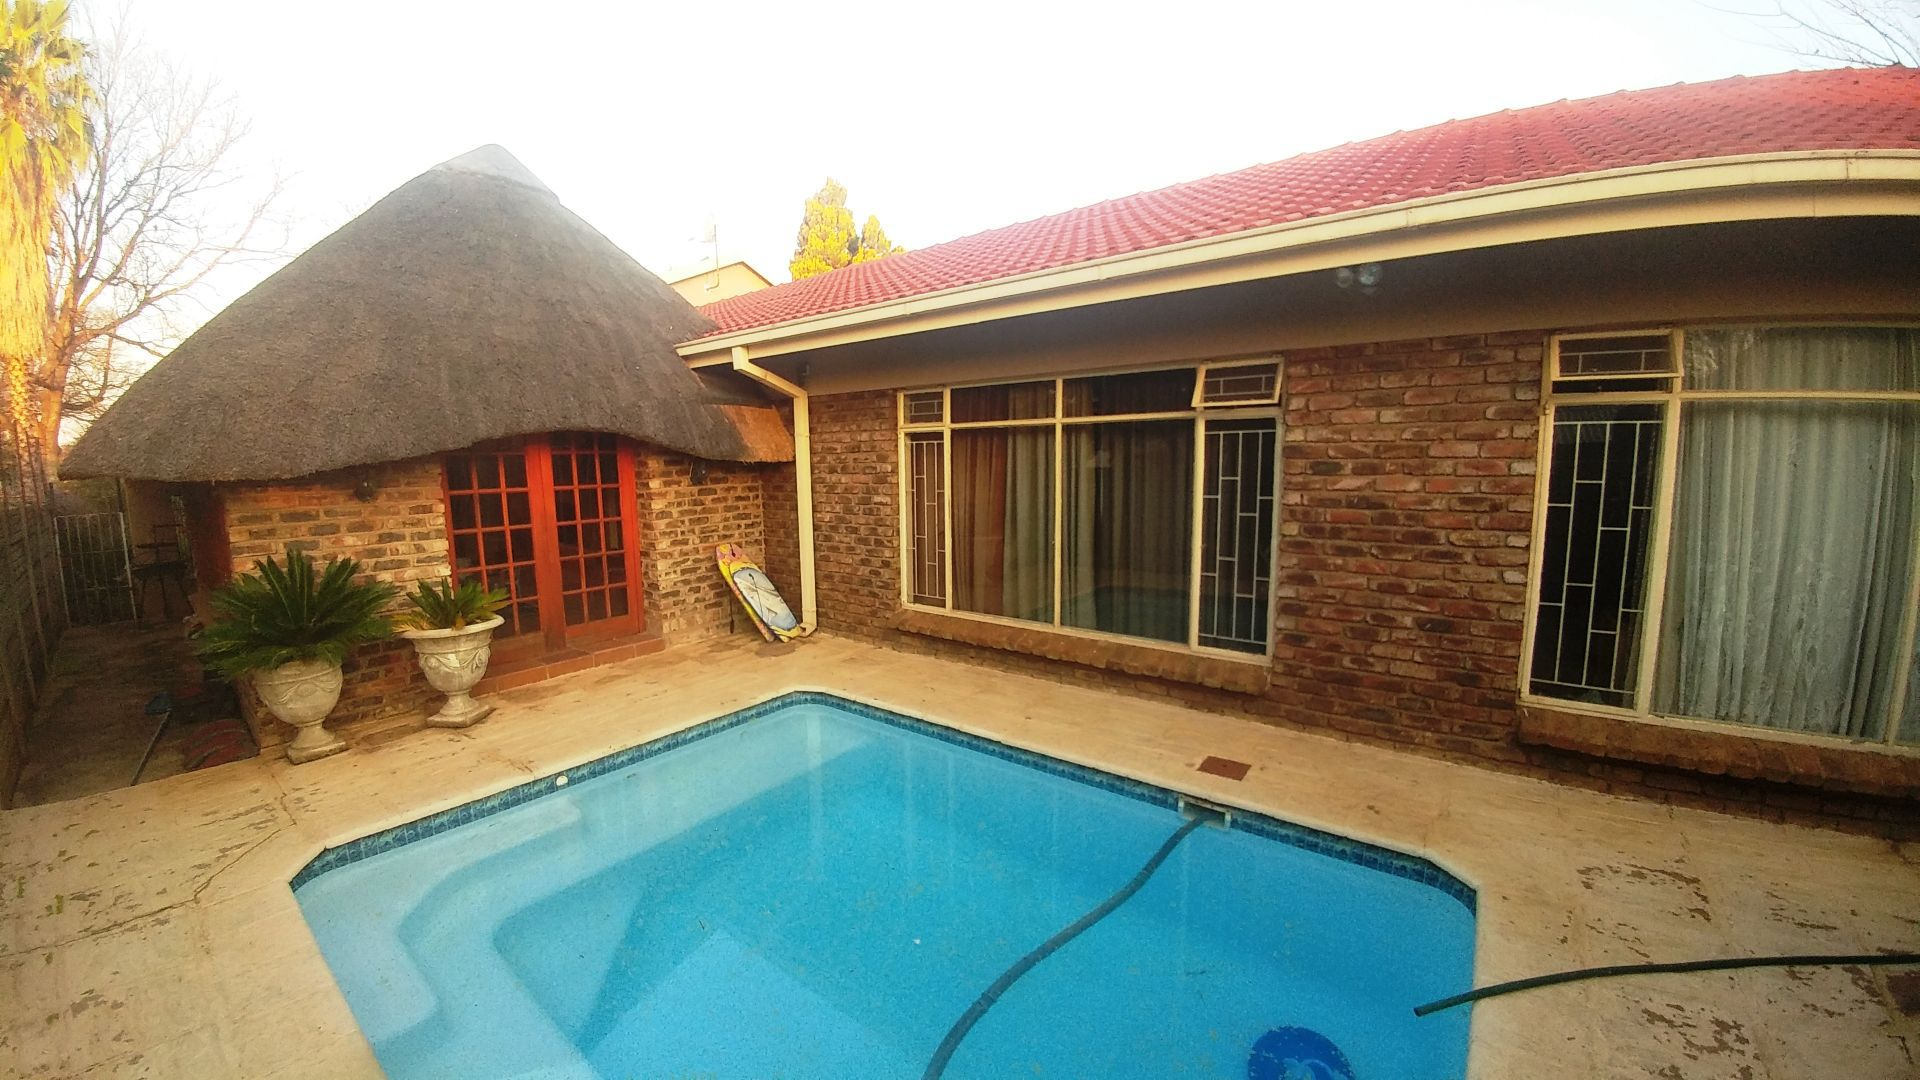 Potchefstroom Central property for sale. Ref No: 13508234. Picture no 6